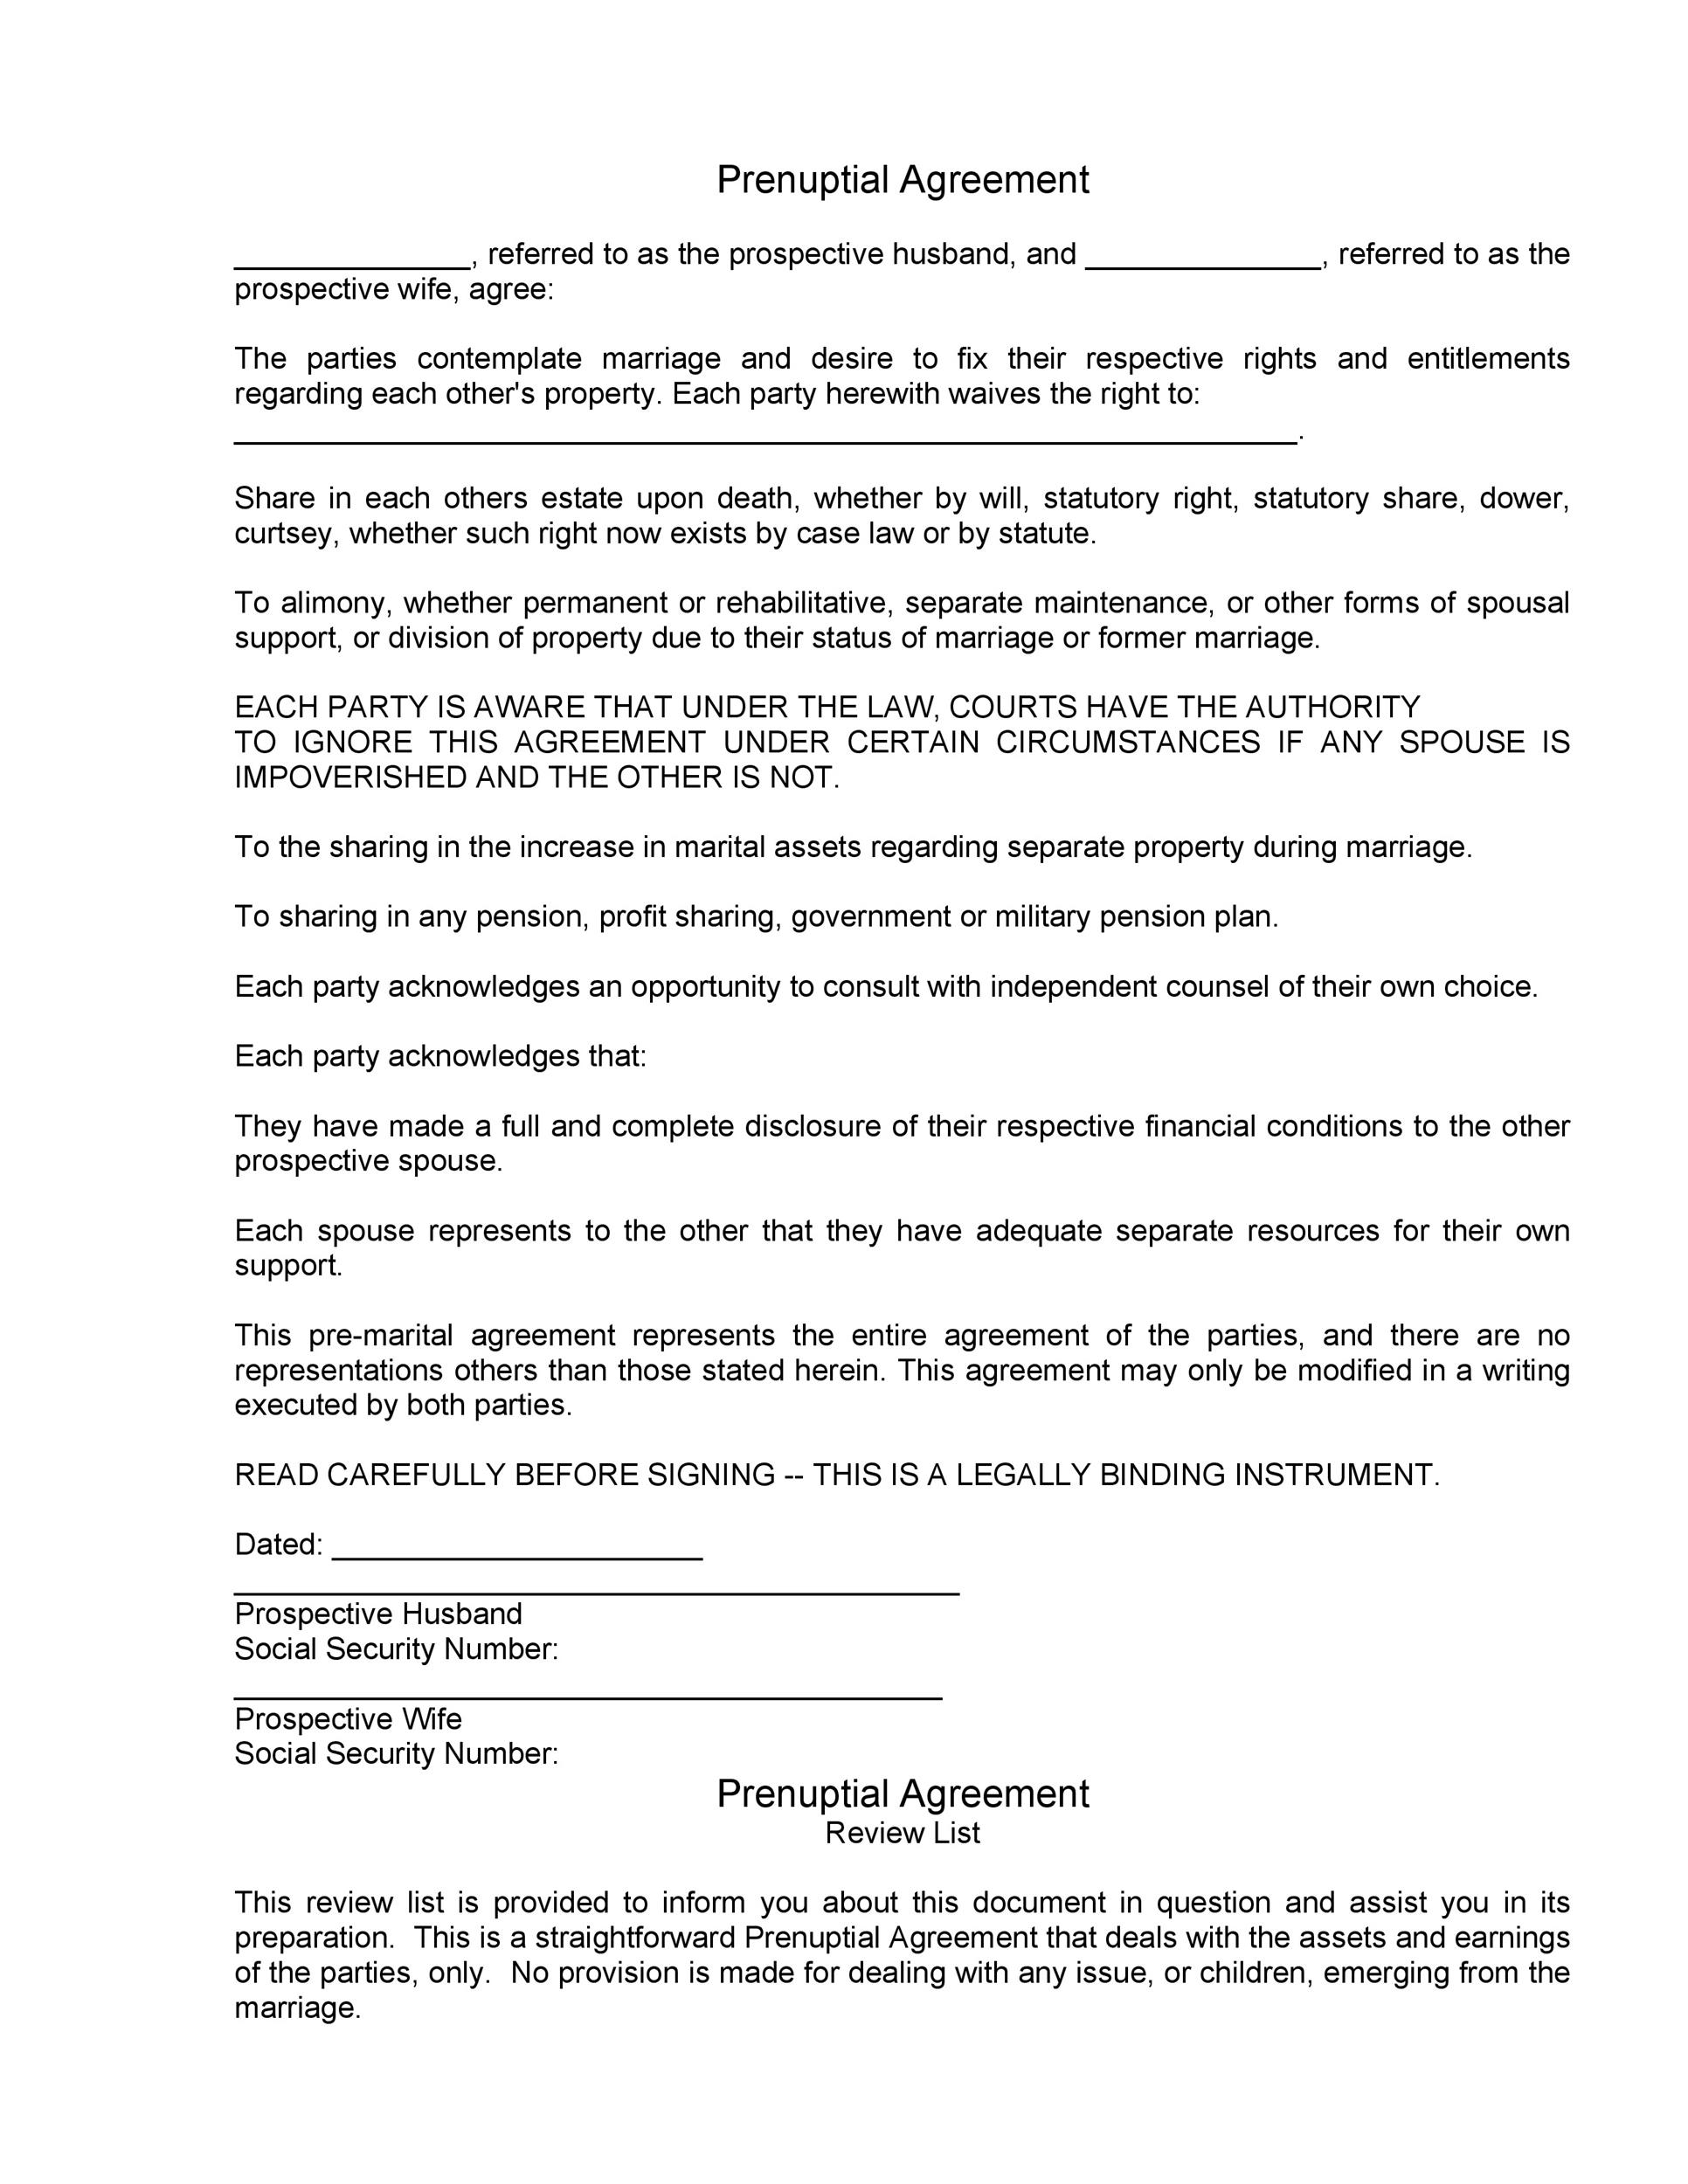 Free Prenuptial Agreement Template 25